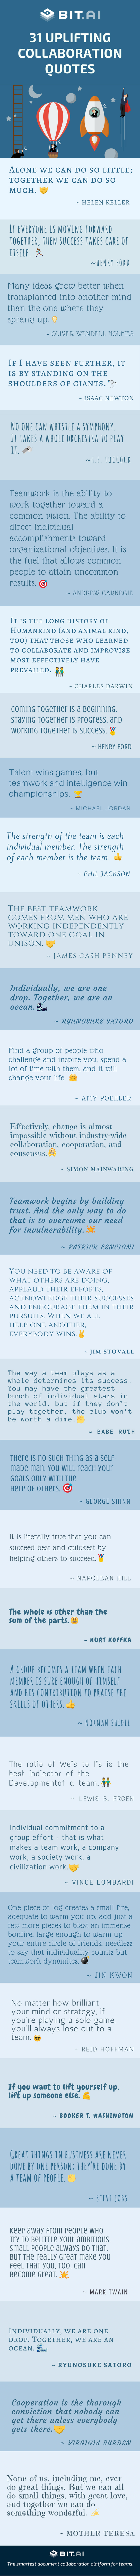 31 Uplifting Collaboration Quotes to Ignite Successful Teamwork -Image Info